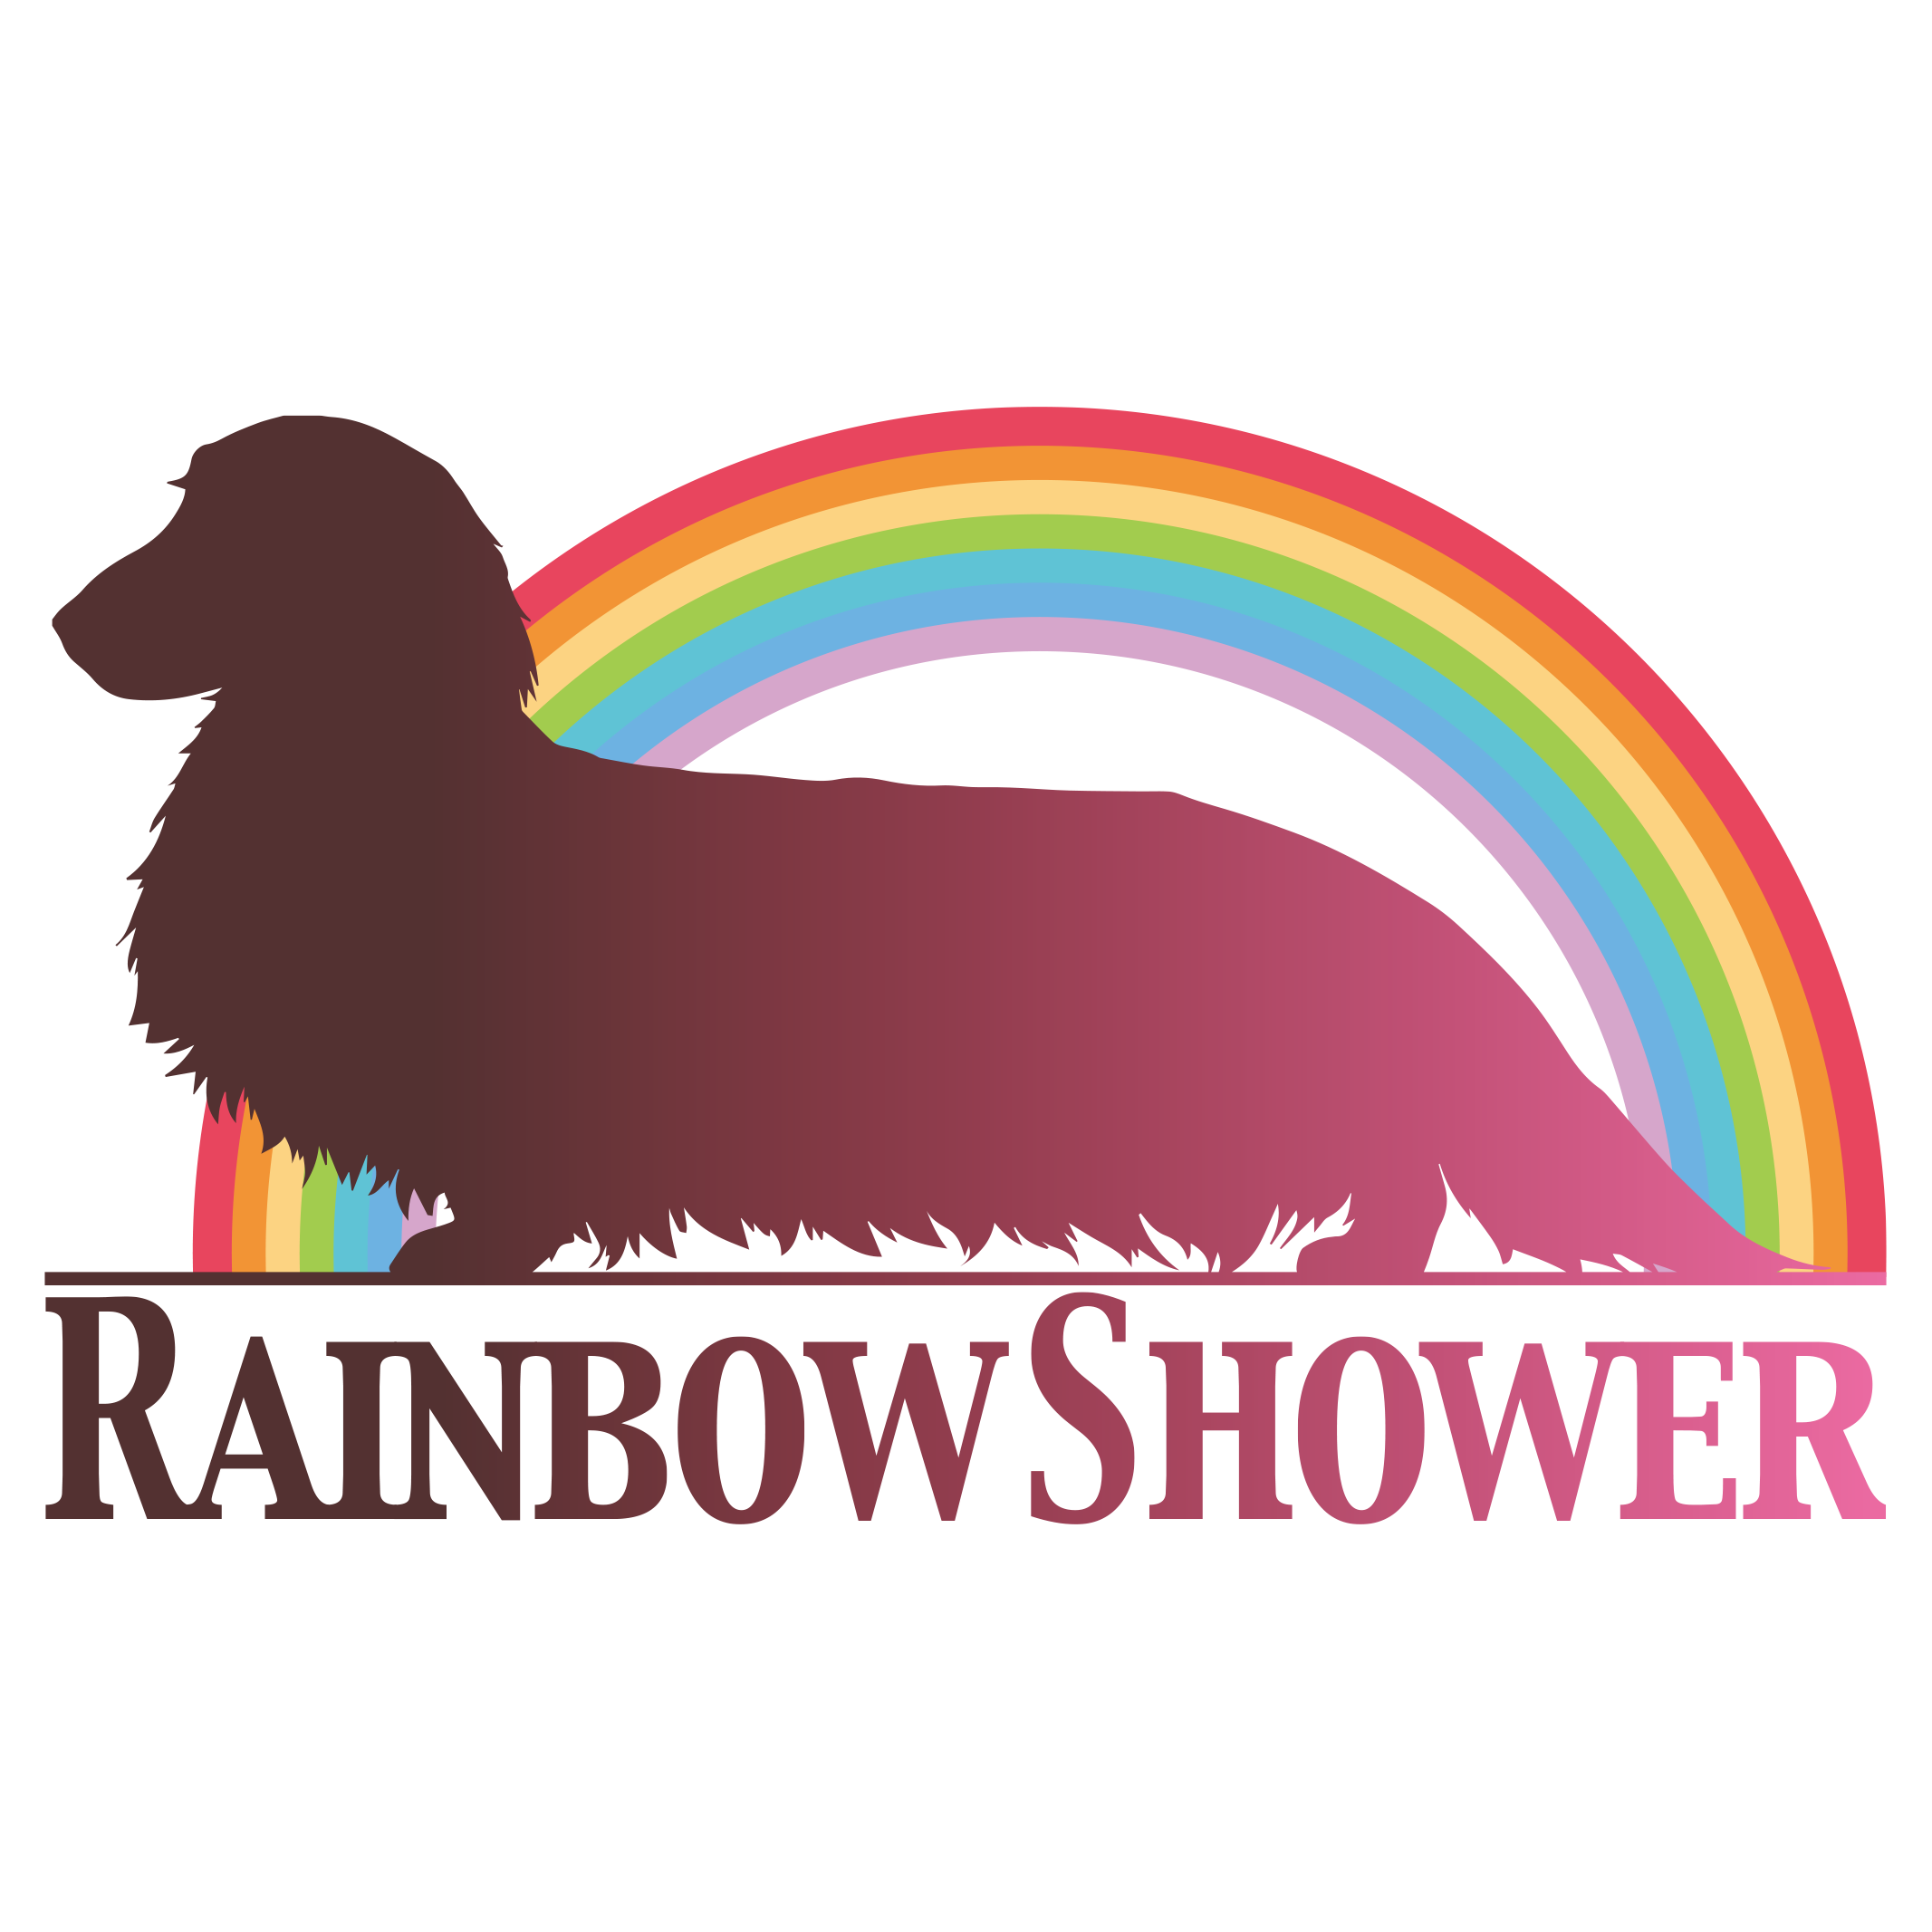 RAINBOW SHOWER